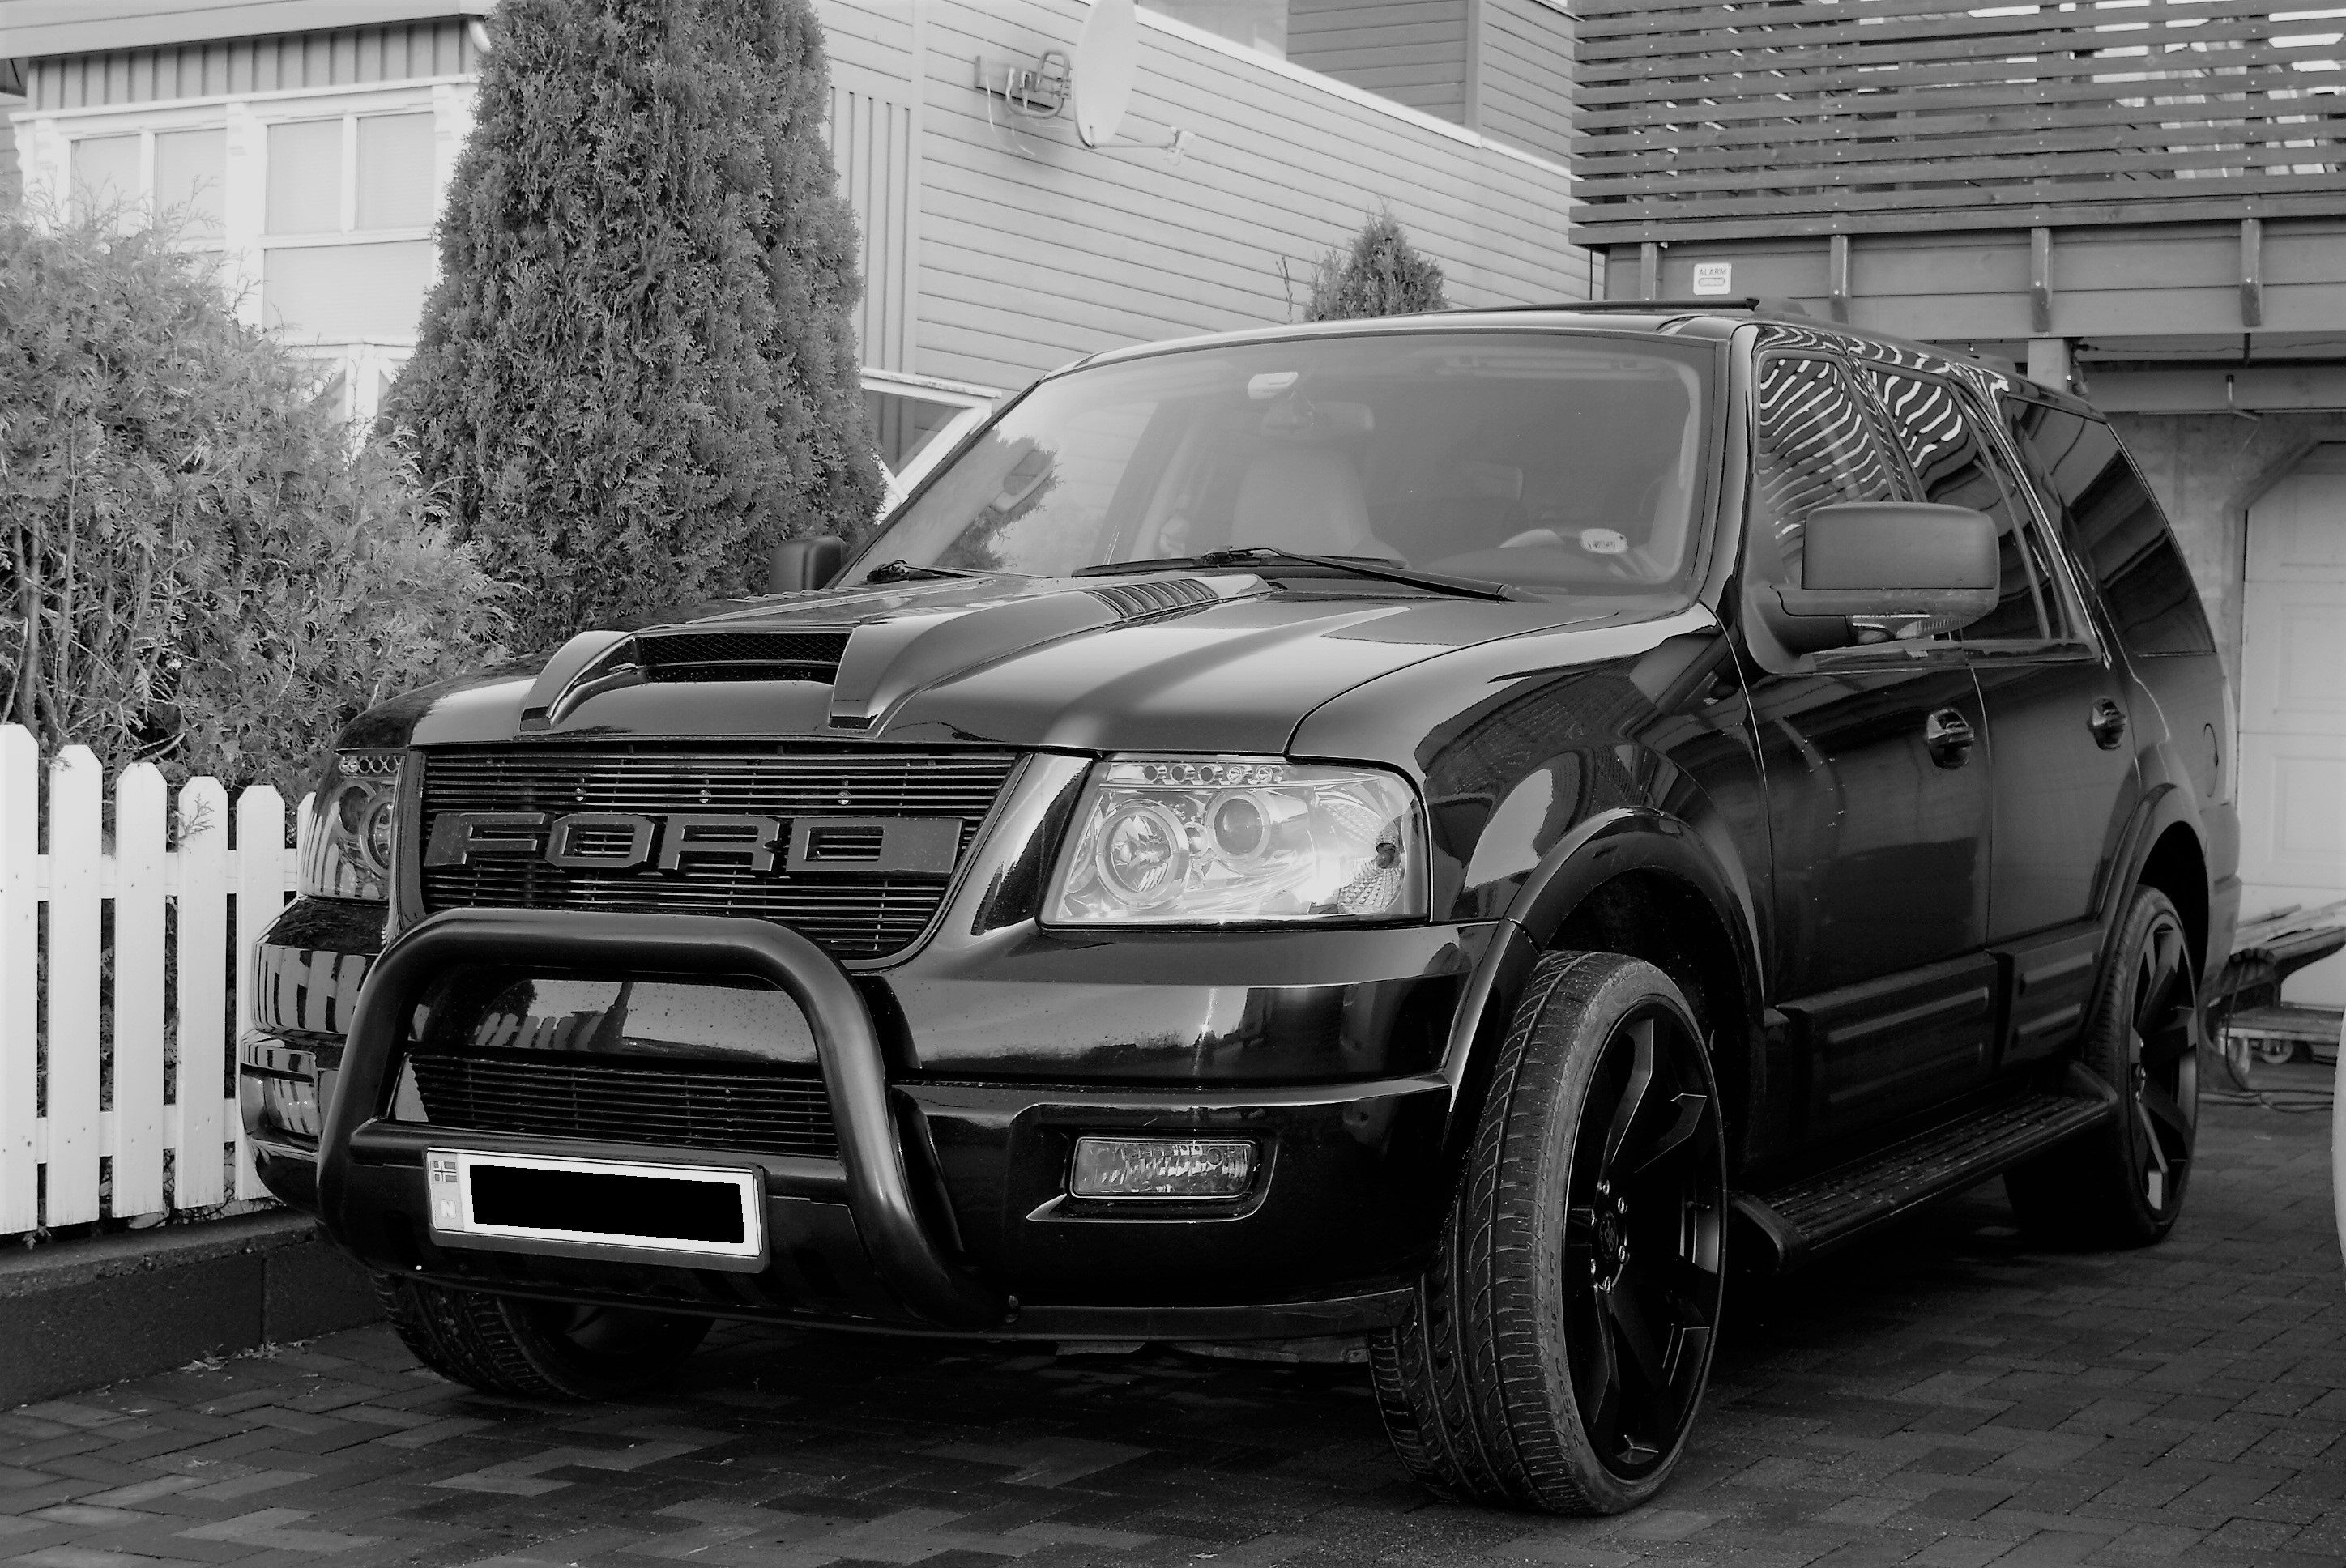 Ford expedition 2003 24 inch wheels 1st ever custom raptor grill for ford expedition